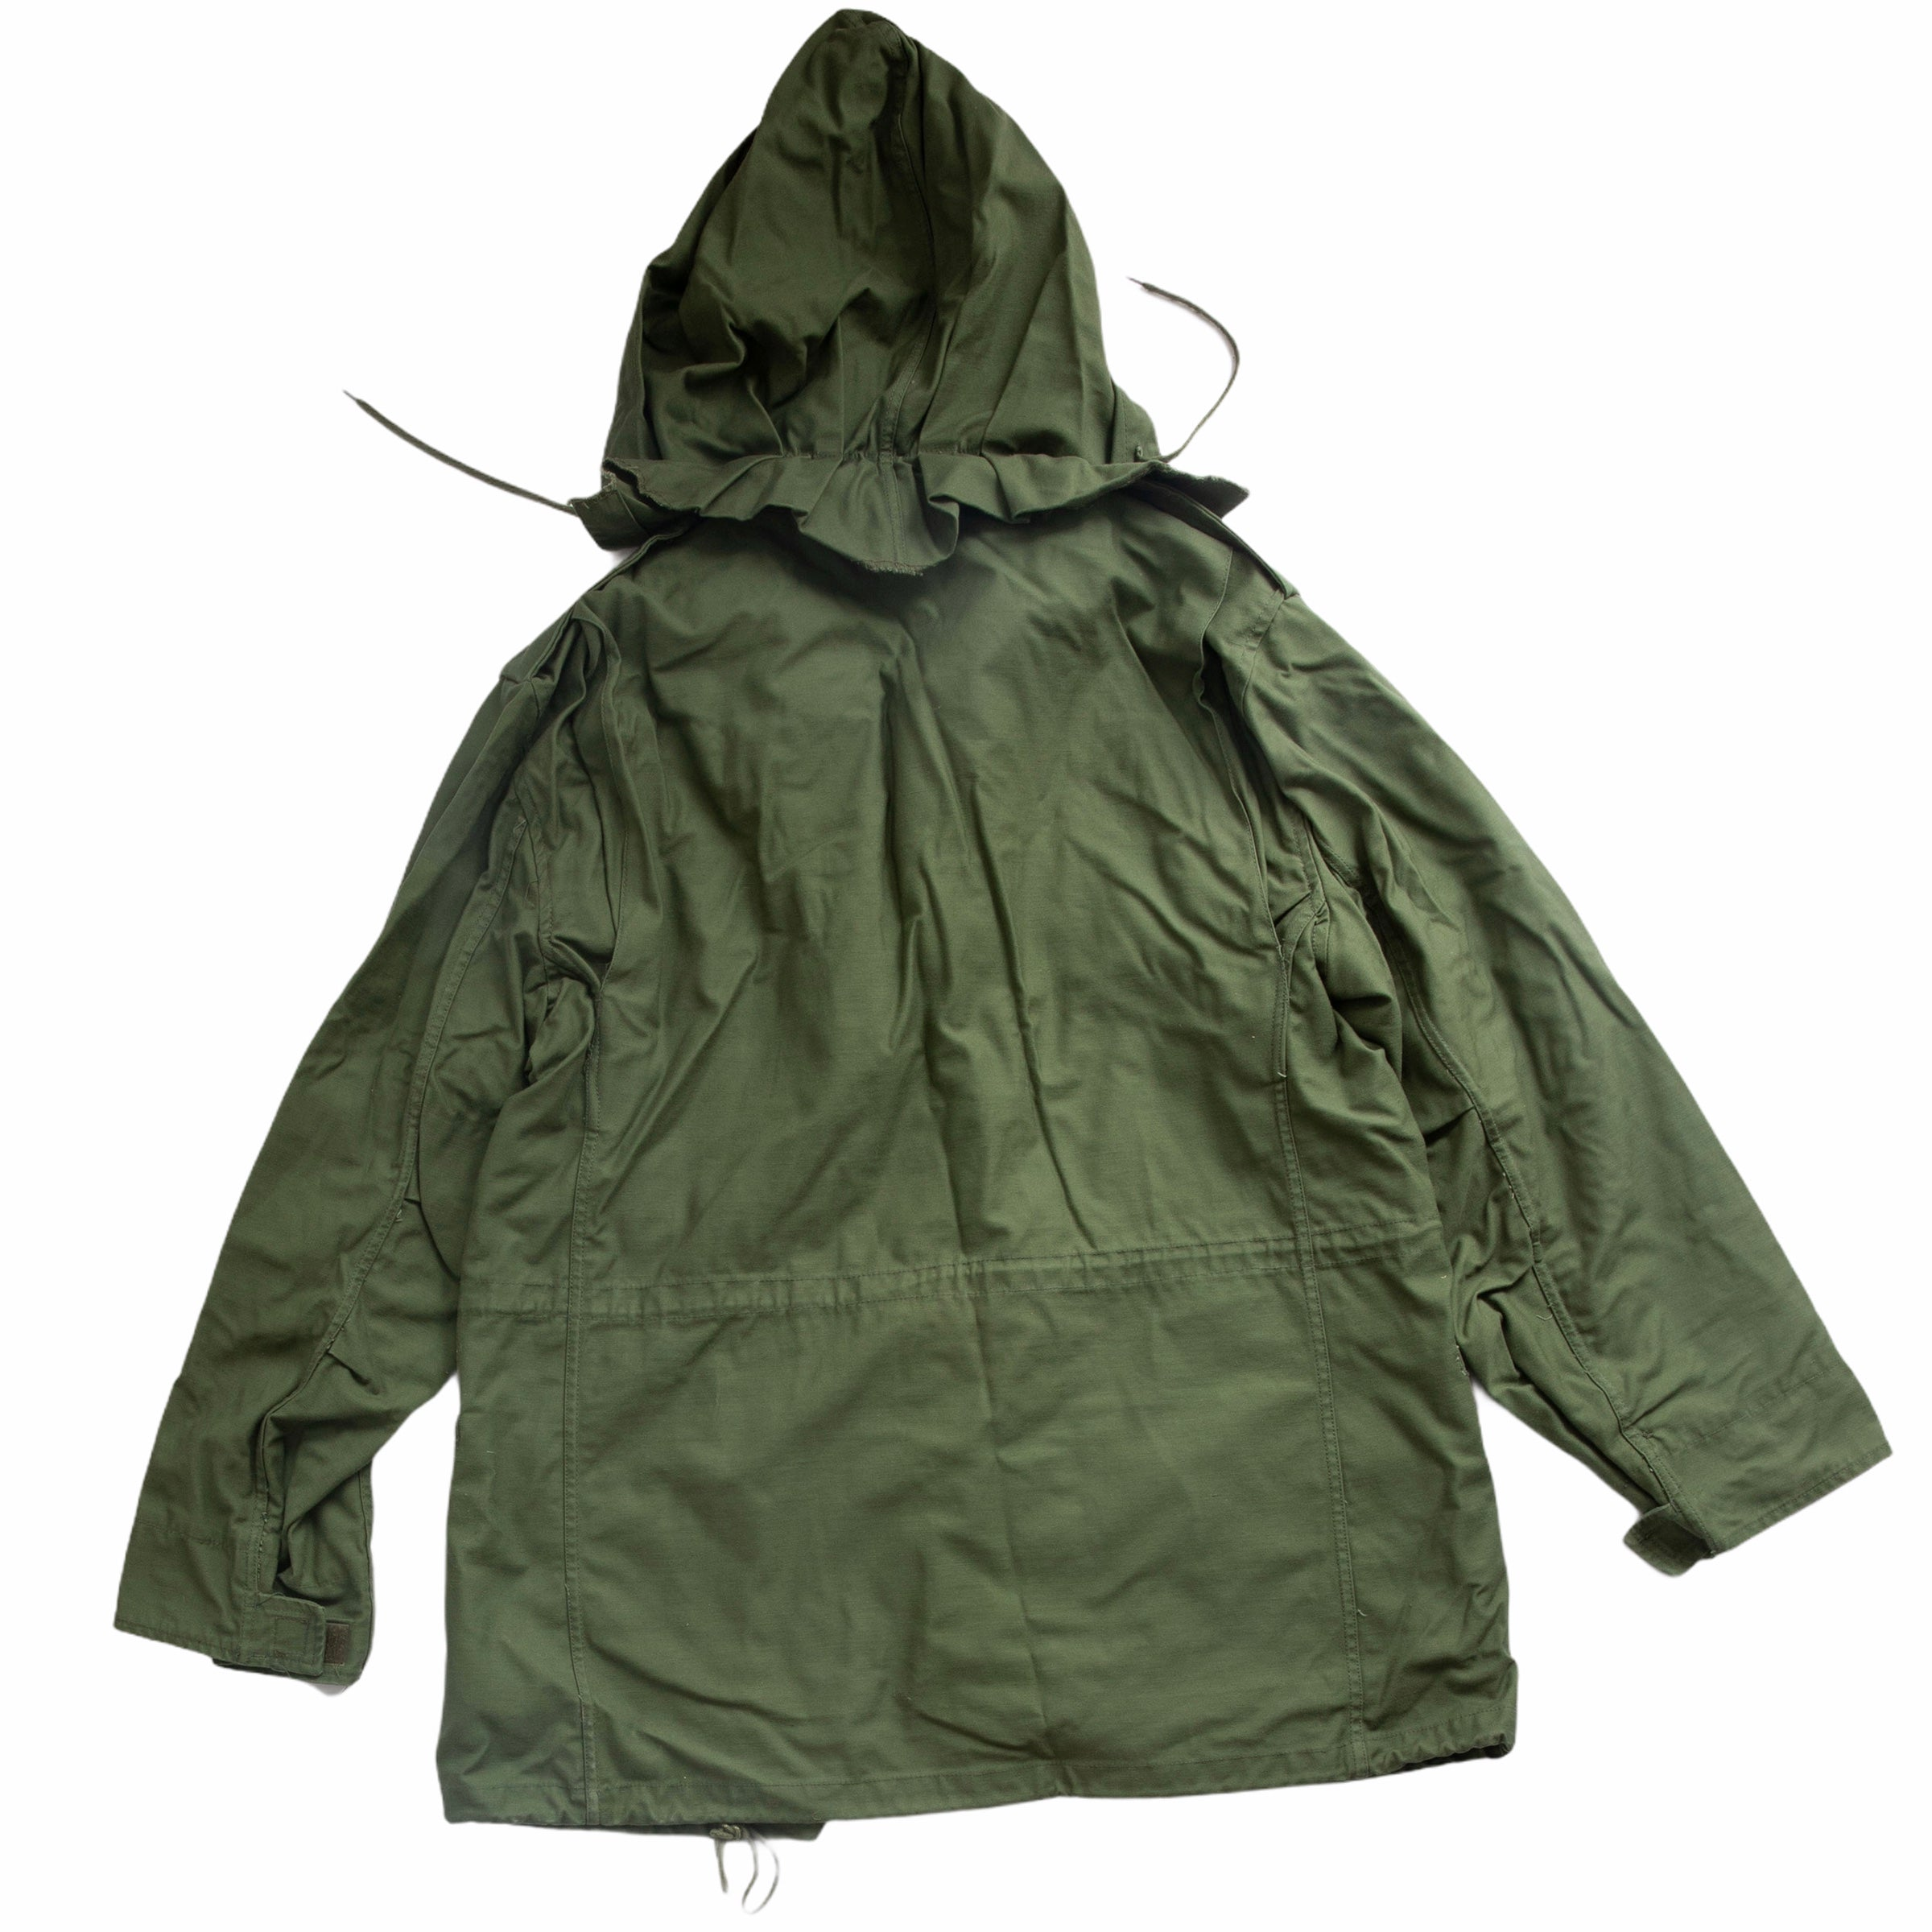 Vintage Army Green Coat